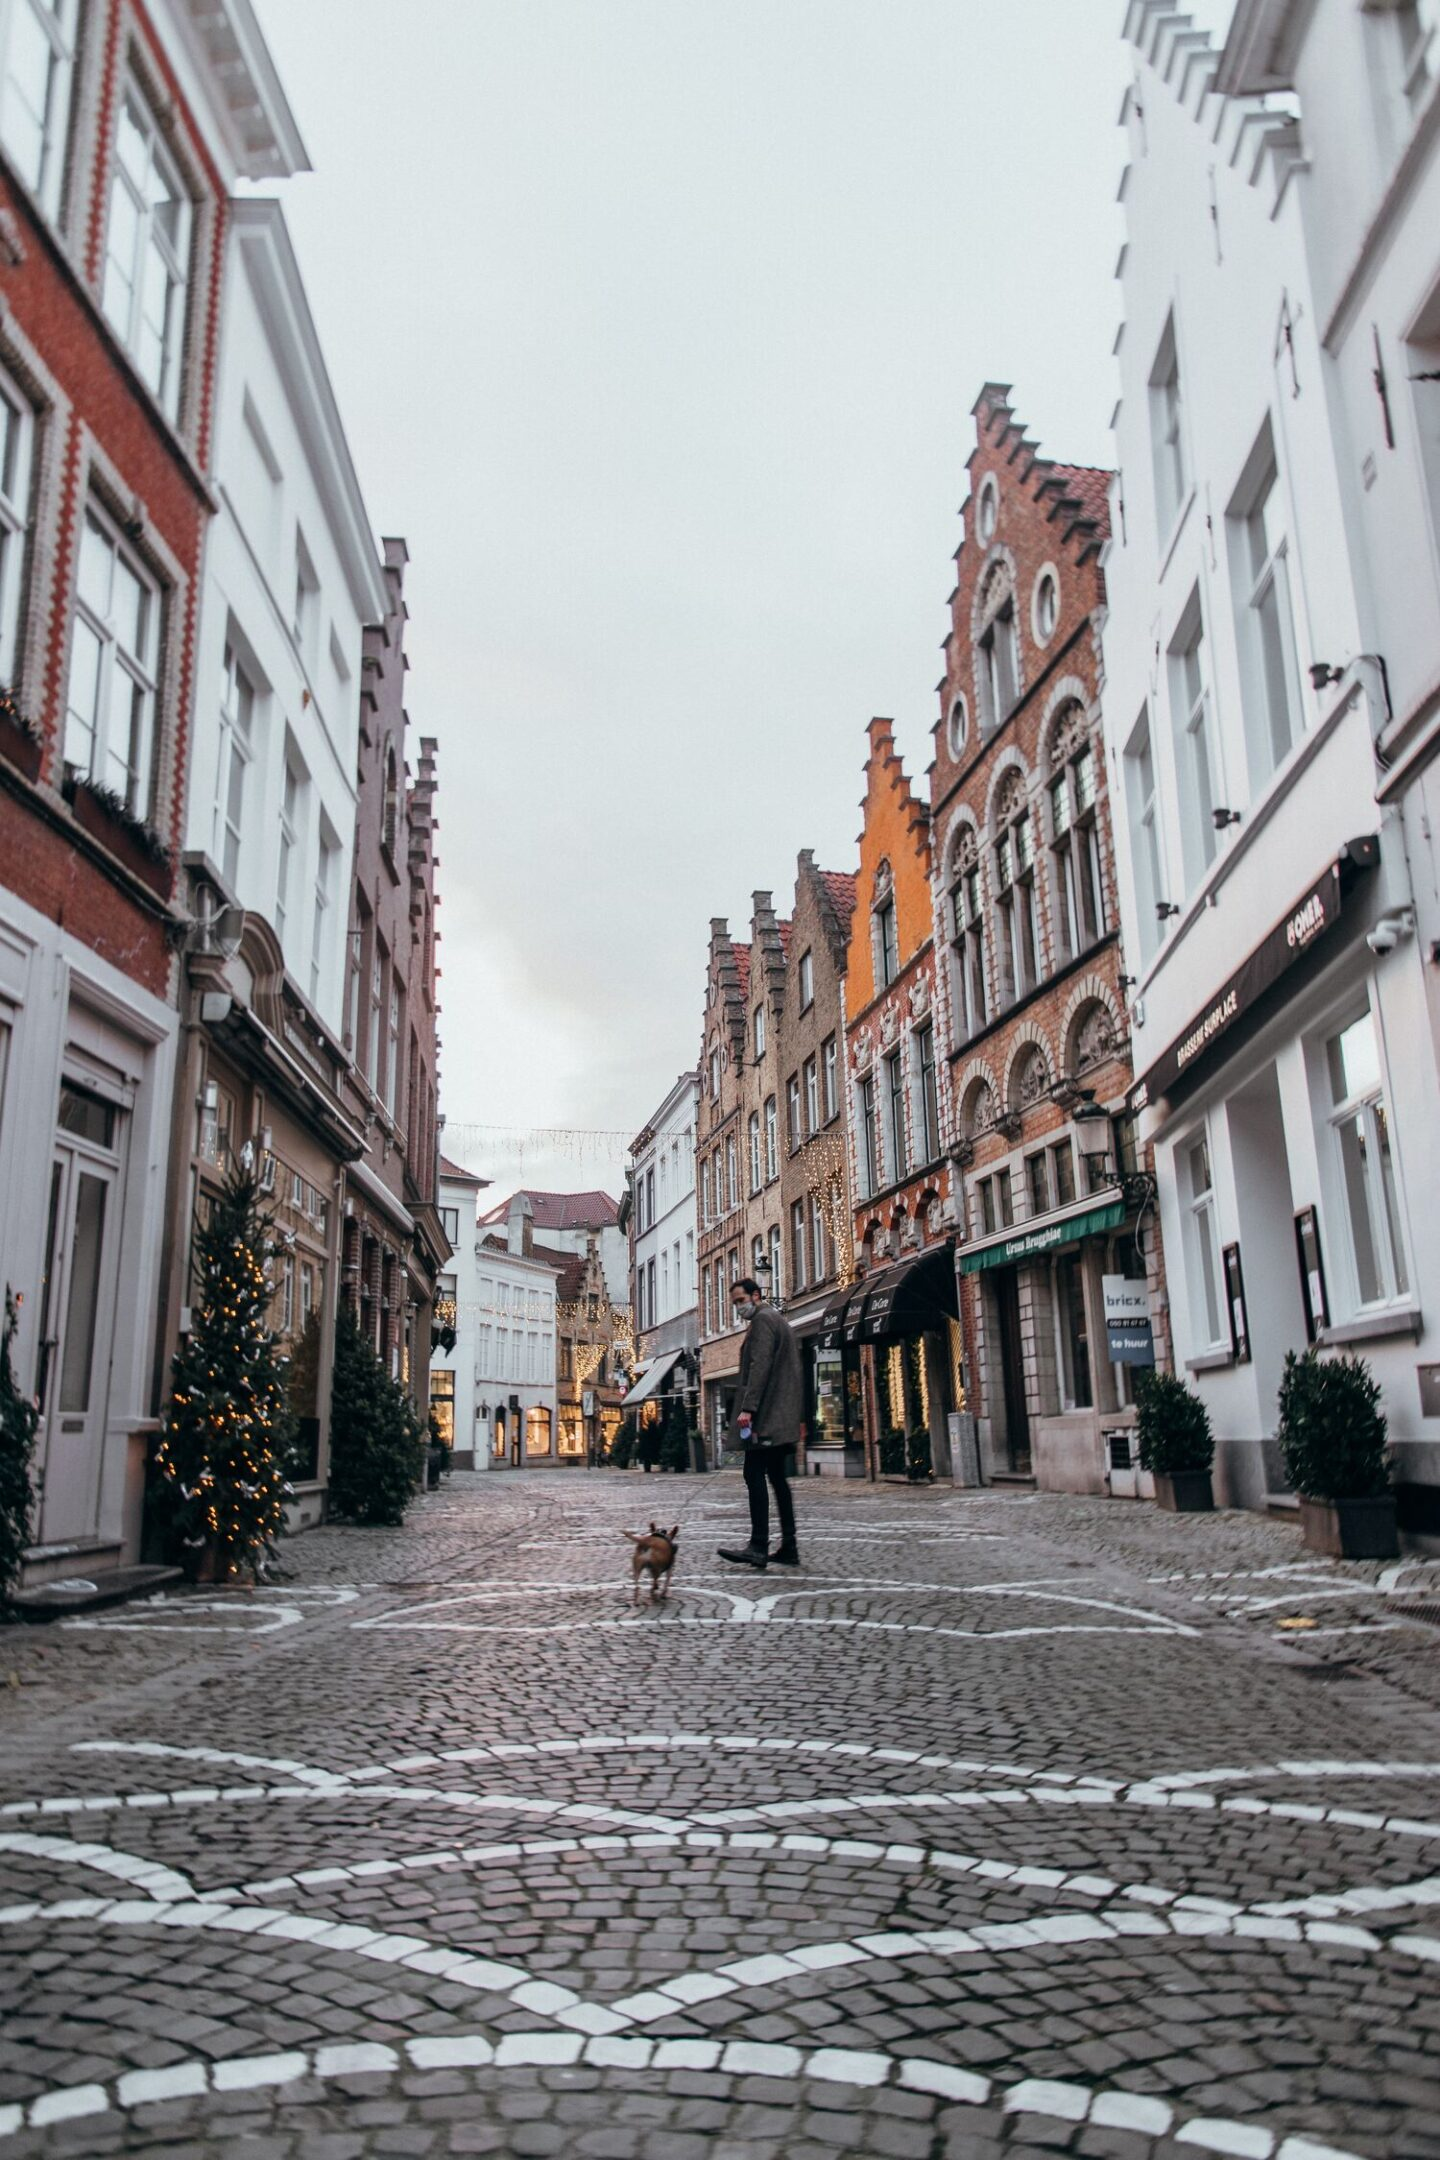 Walking the bruges street on route to the main square and bruges center